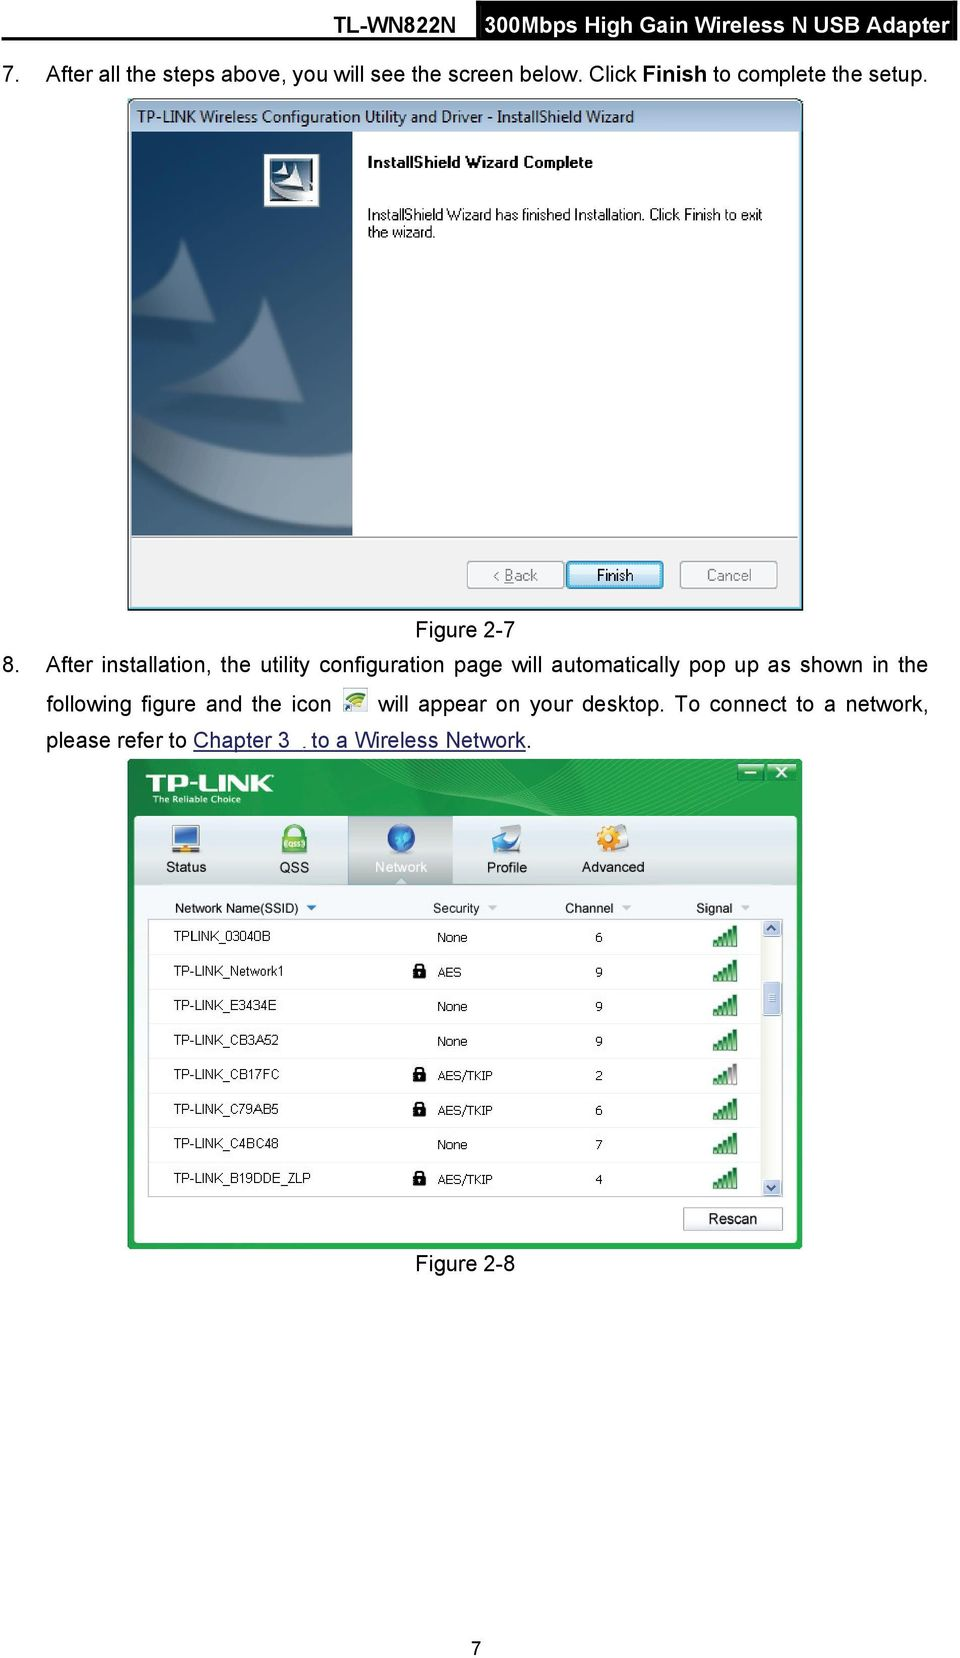 After installation, the utility configuration page will automatically pop up as shown in the